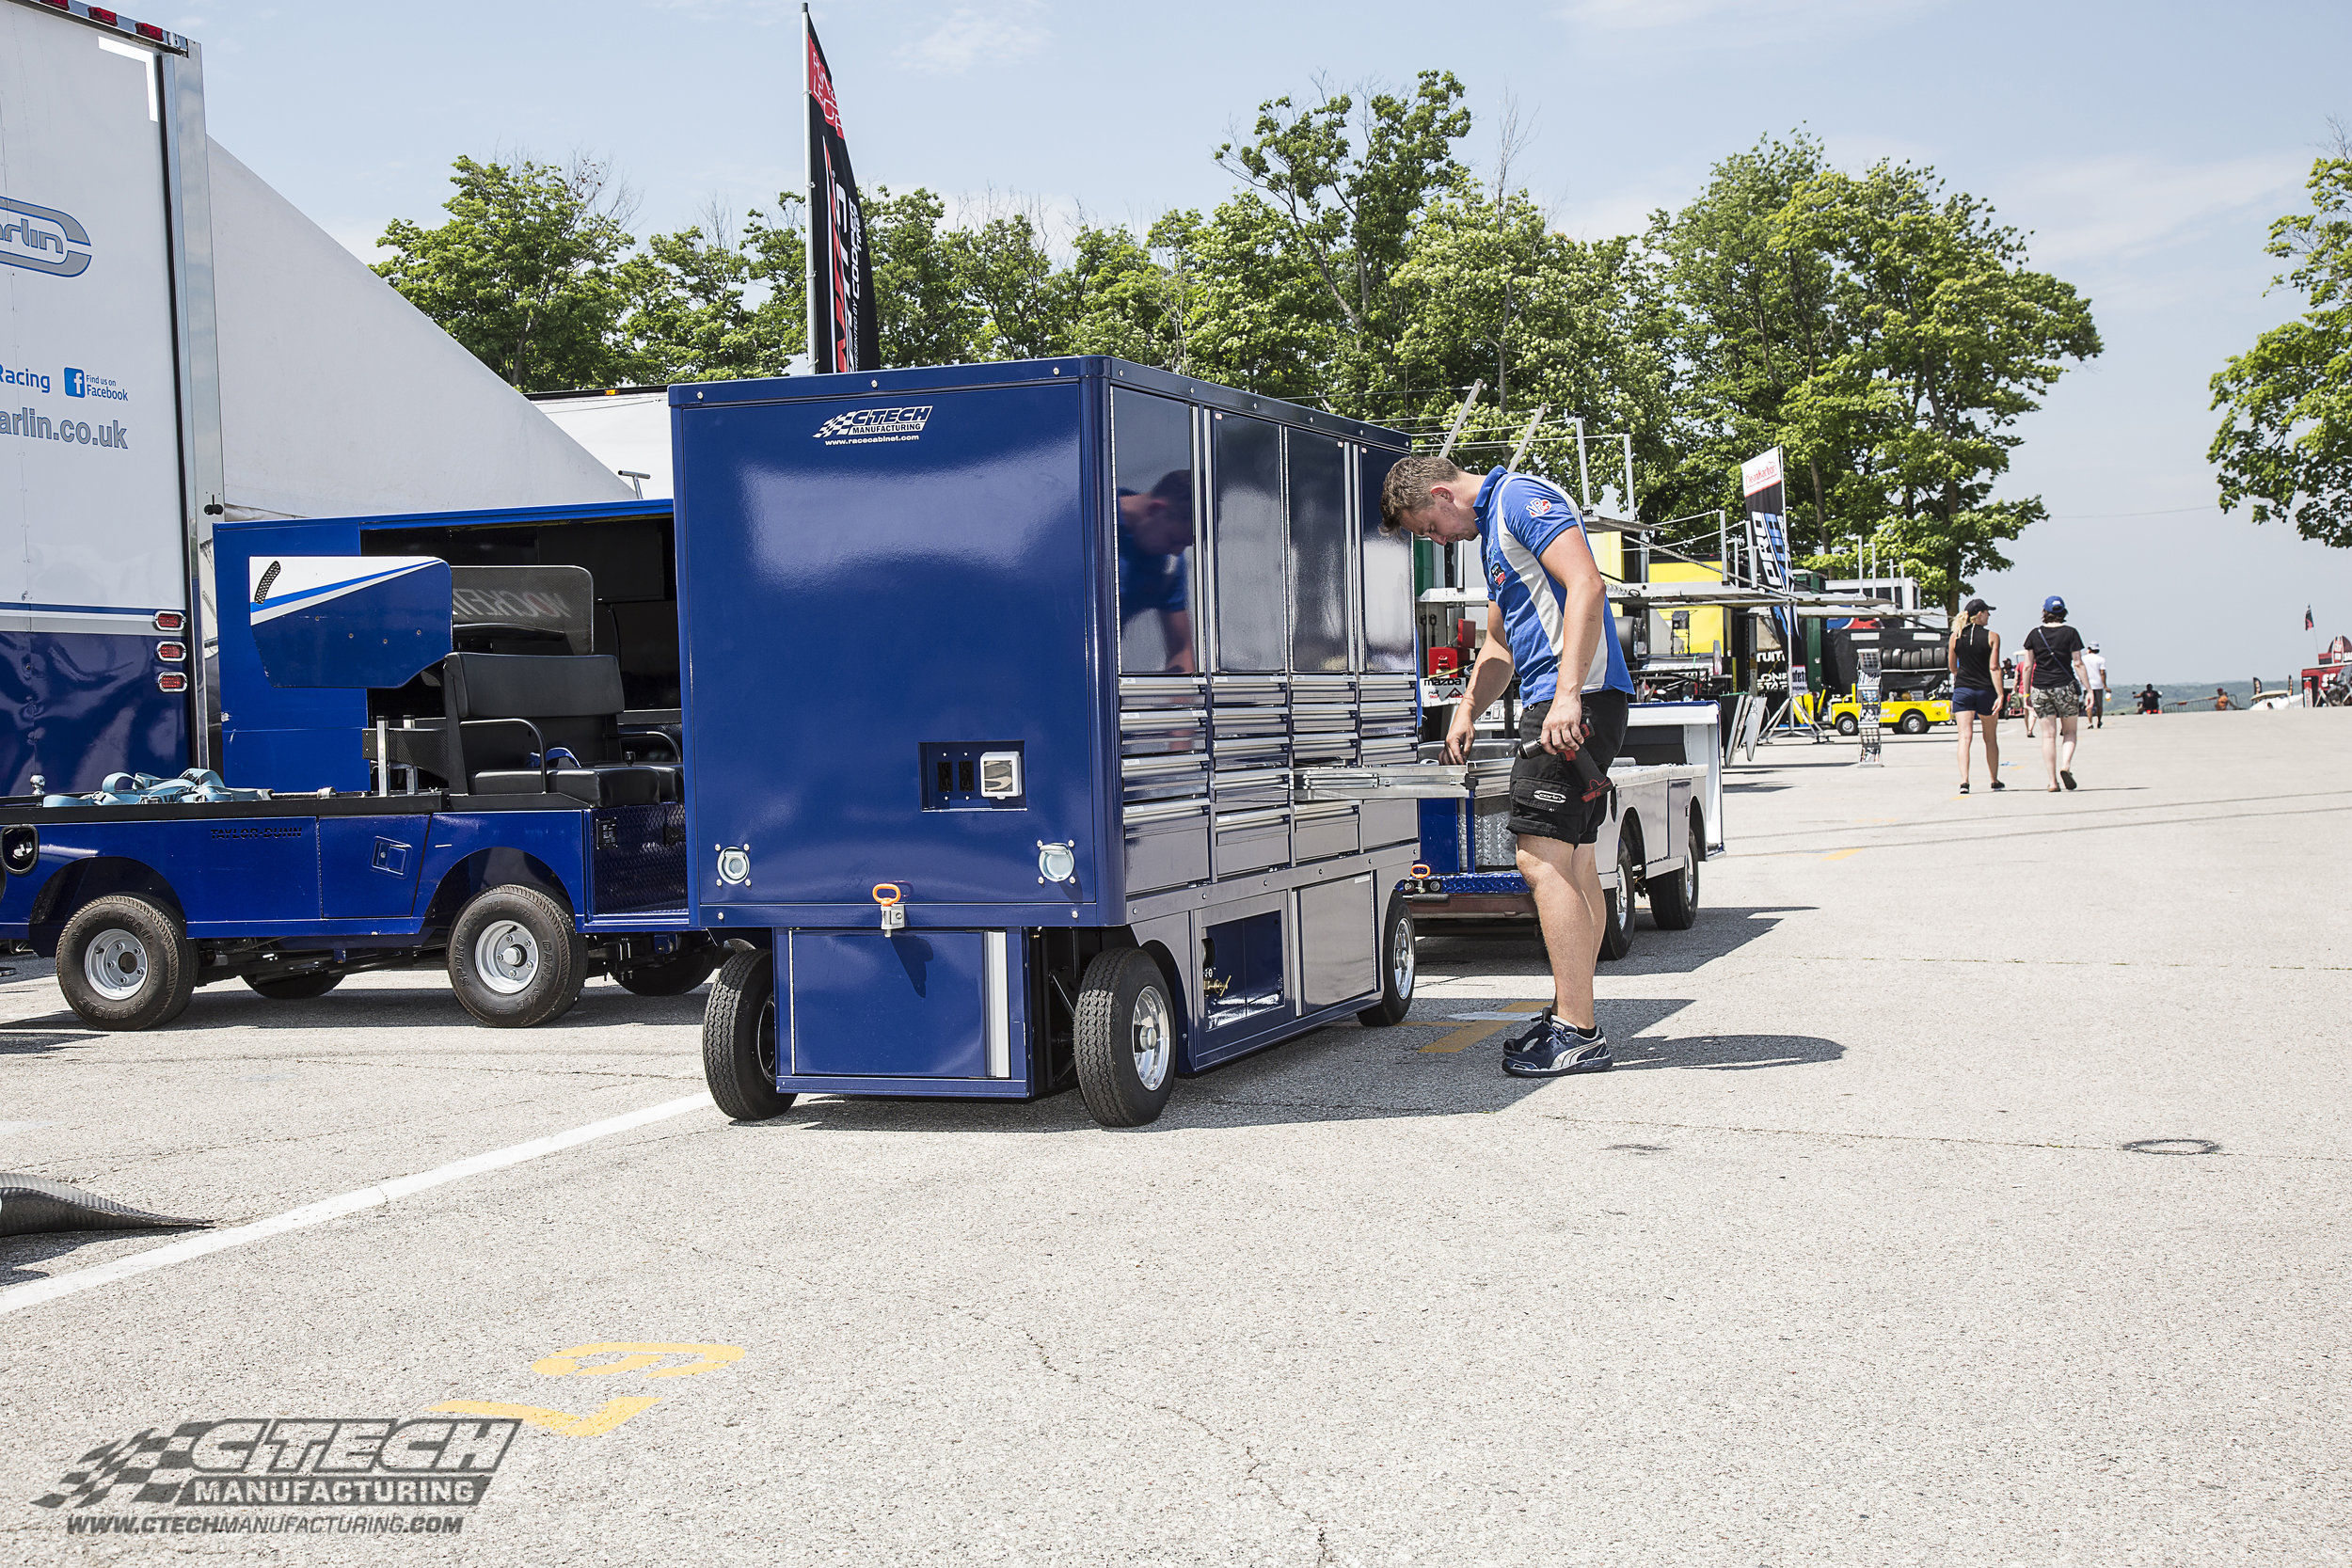 Sportsman Carts are among the largest pit cart models offered by CTECH, boasting chassis storage for up to four nitrogen tanks (complete with pneumatic distribution), ship-to-shore power integration, a flip-down workbench, and much more.